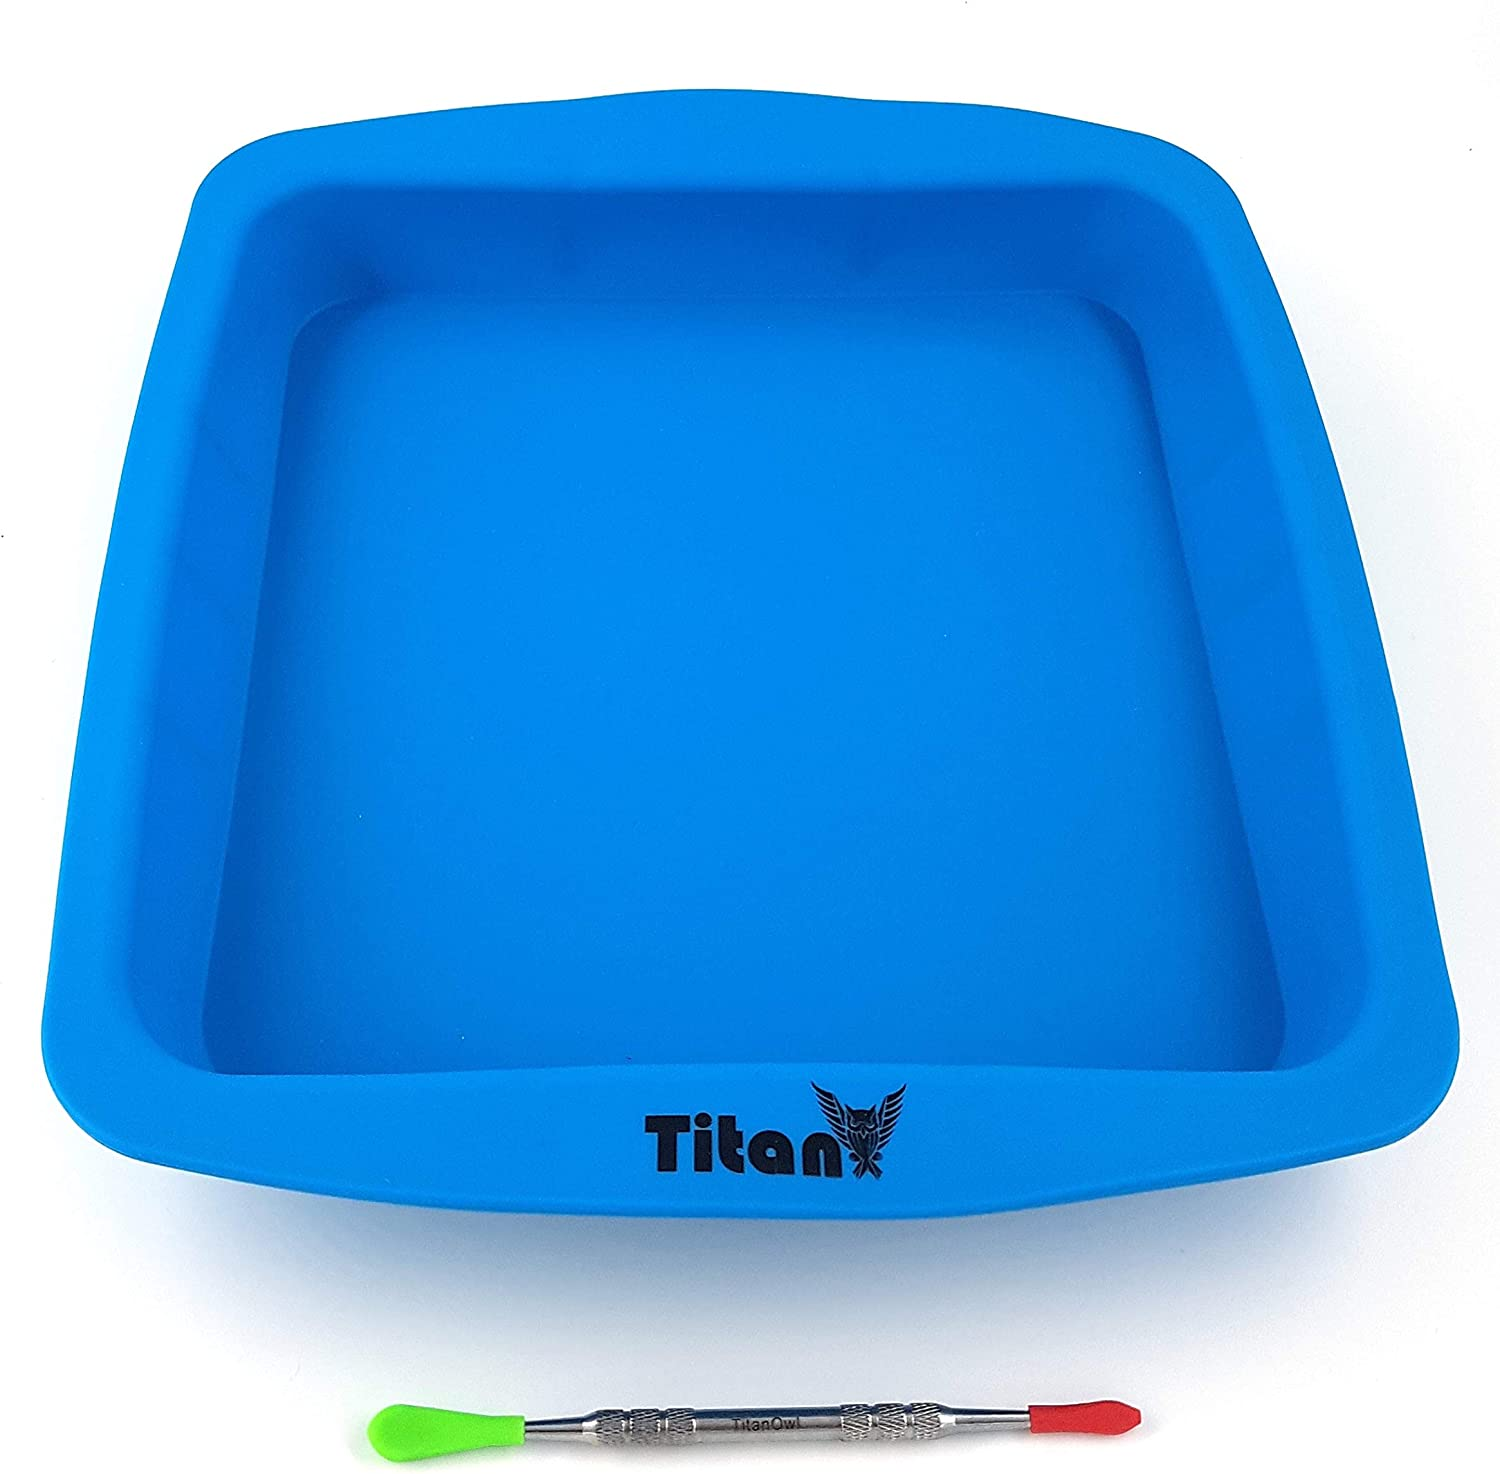 Silicone Grip Dish Divided Plate Microwave Dishwasher Safe BPA Free Suction Plate Baby Toddler Plate